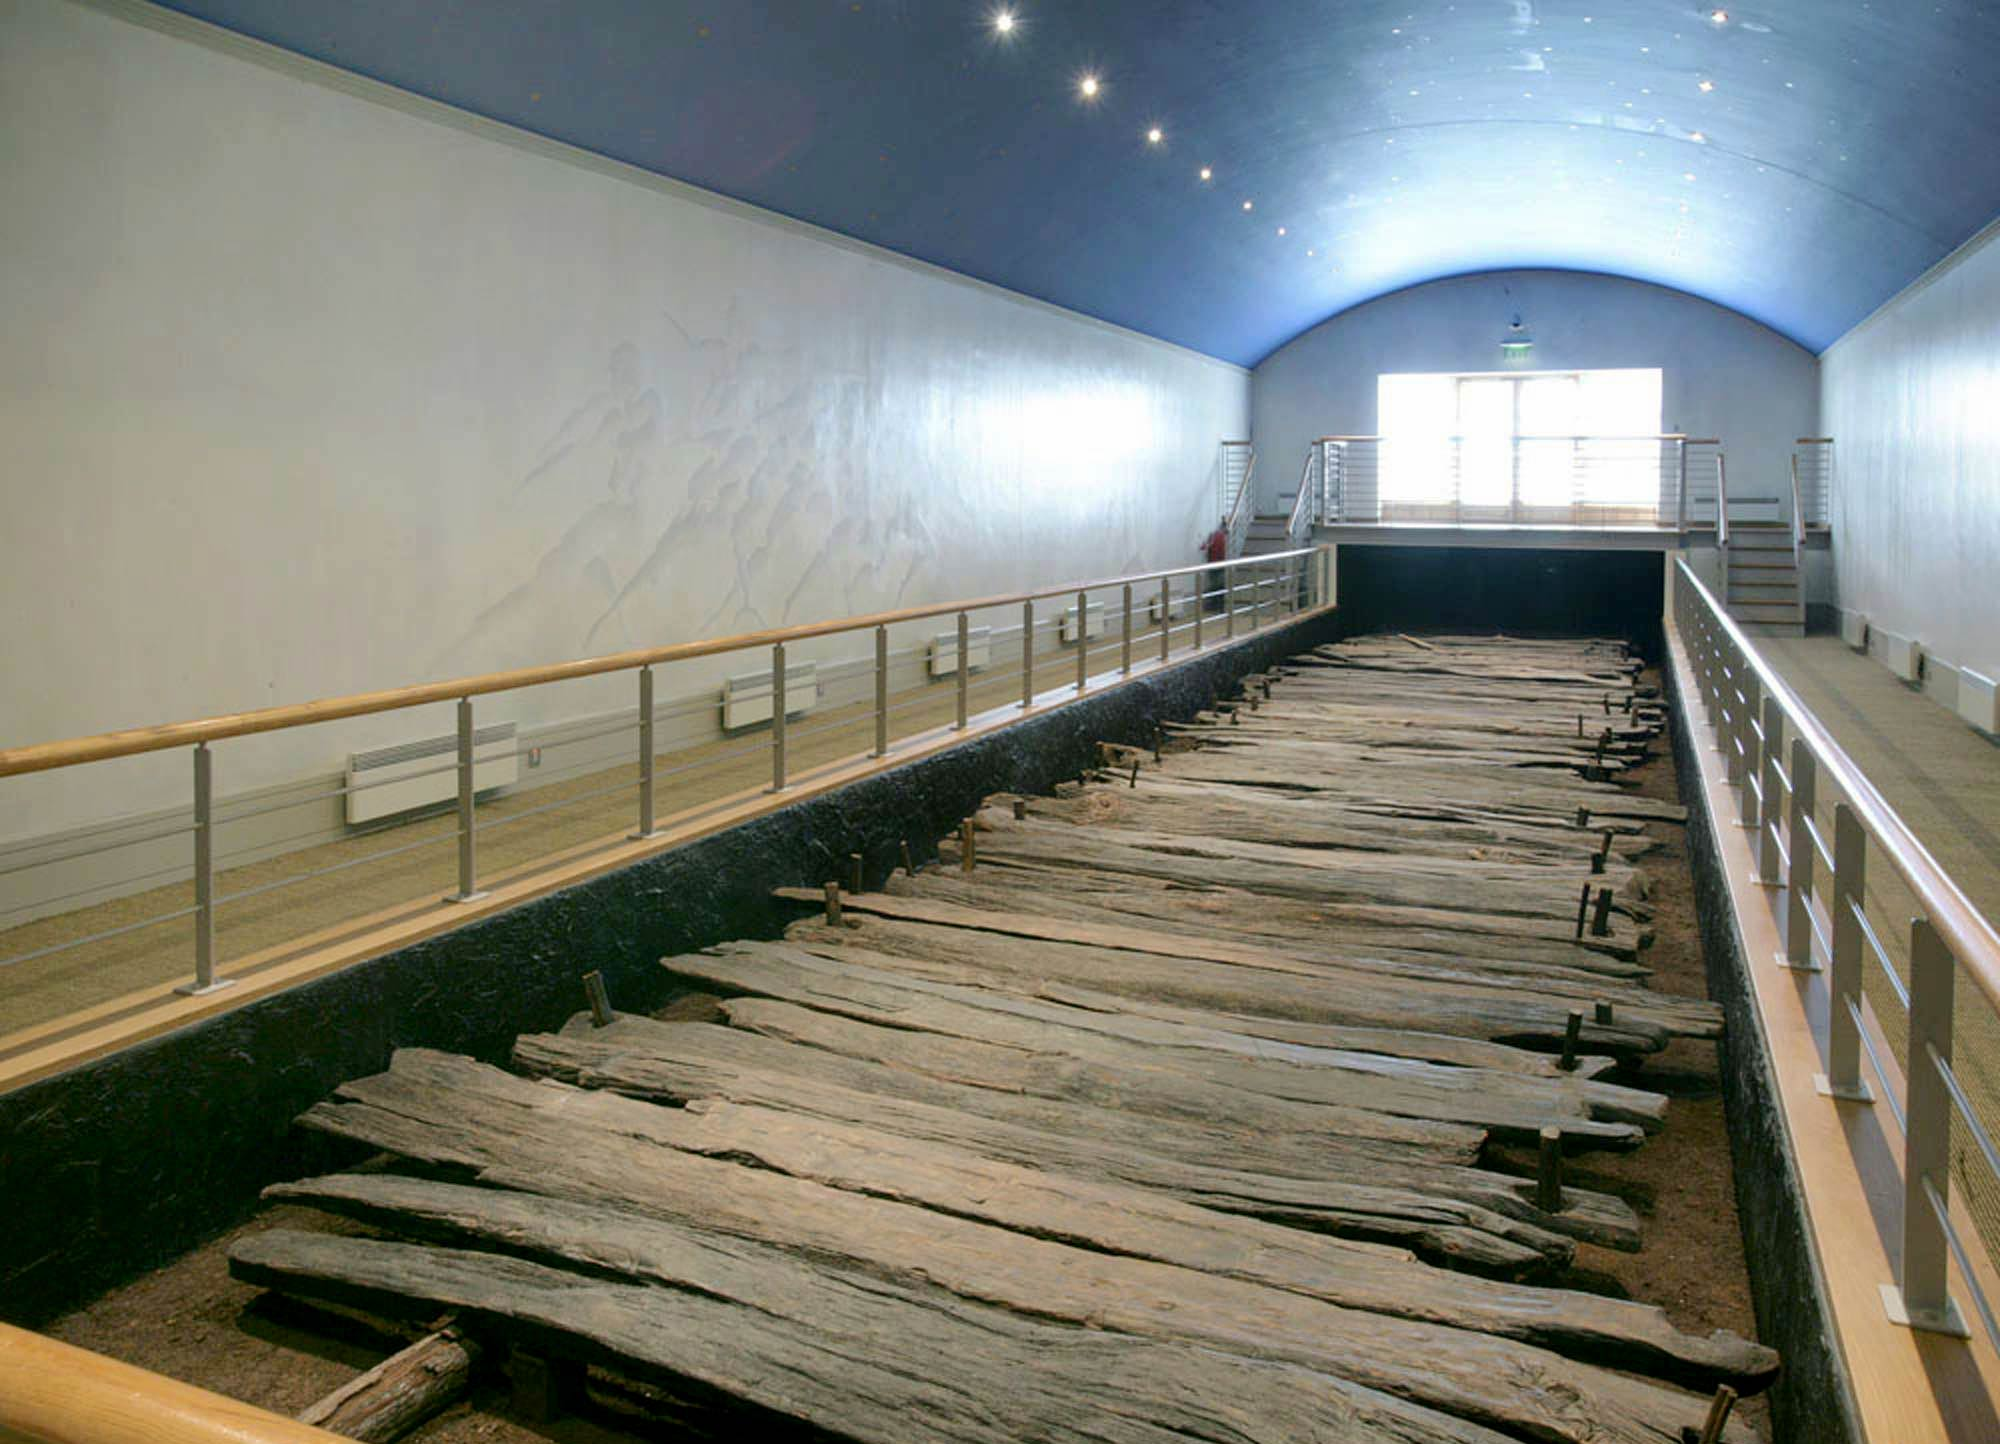 Trackway at the Visitor Centre